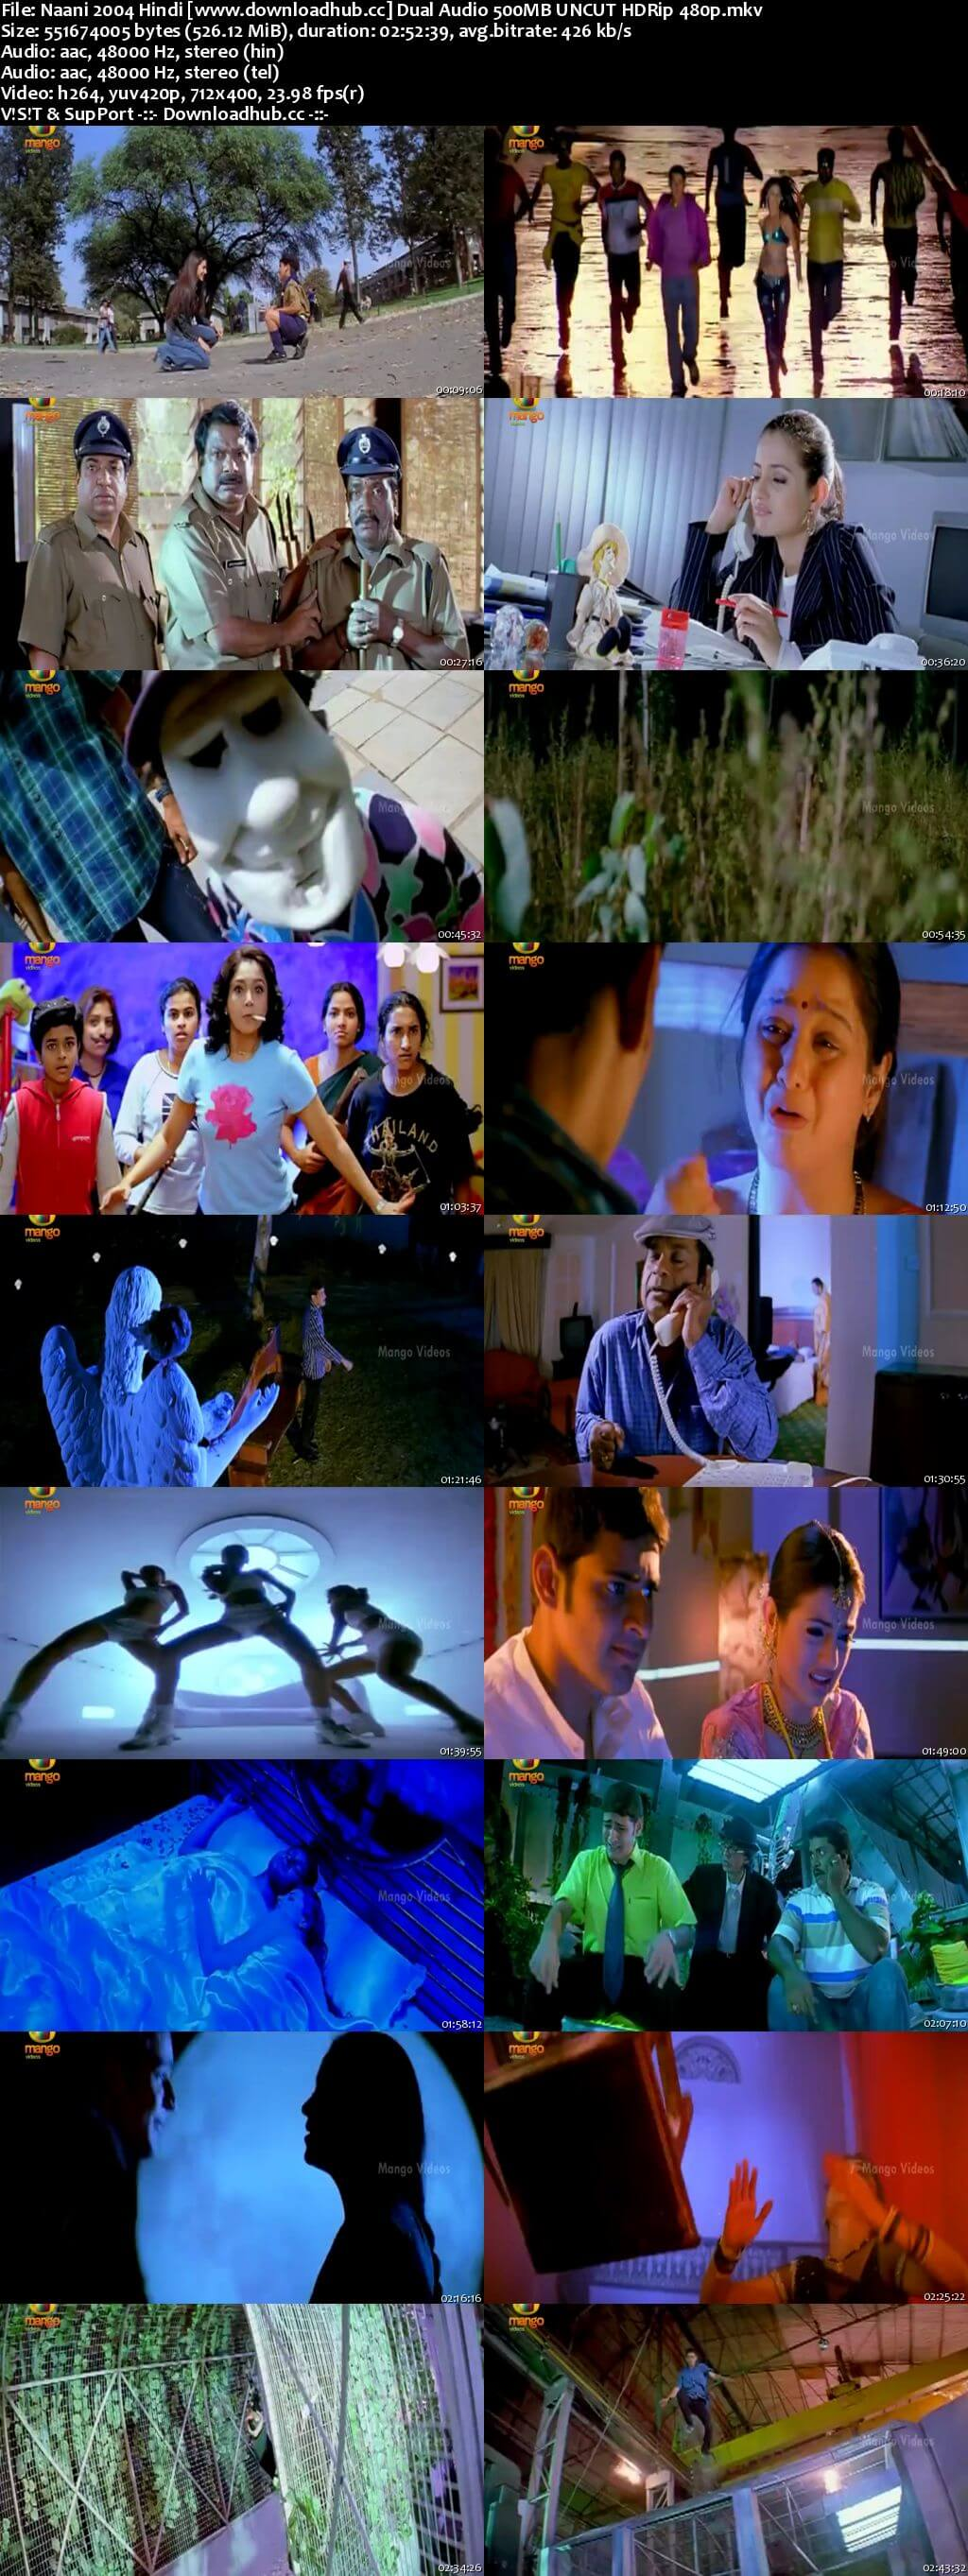 Naani 2004 Hindi Dual Audio 500MB UNCUT HDRip 480p